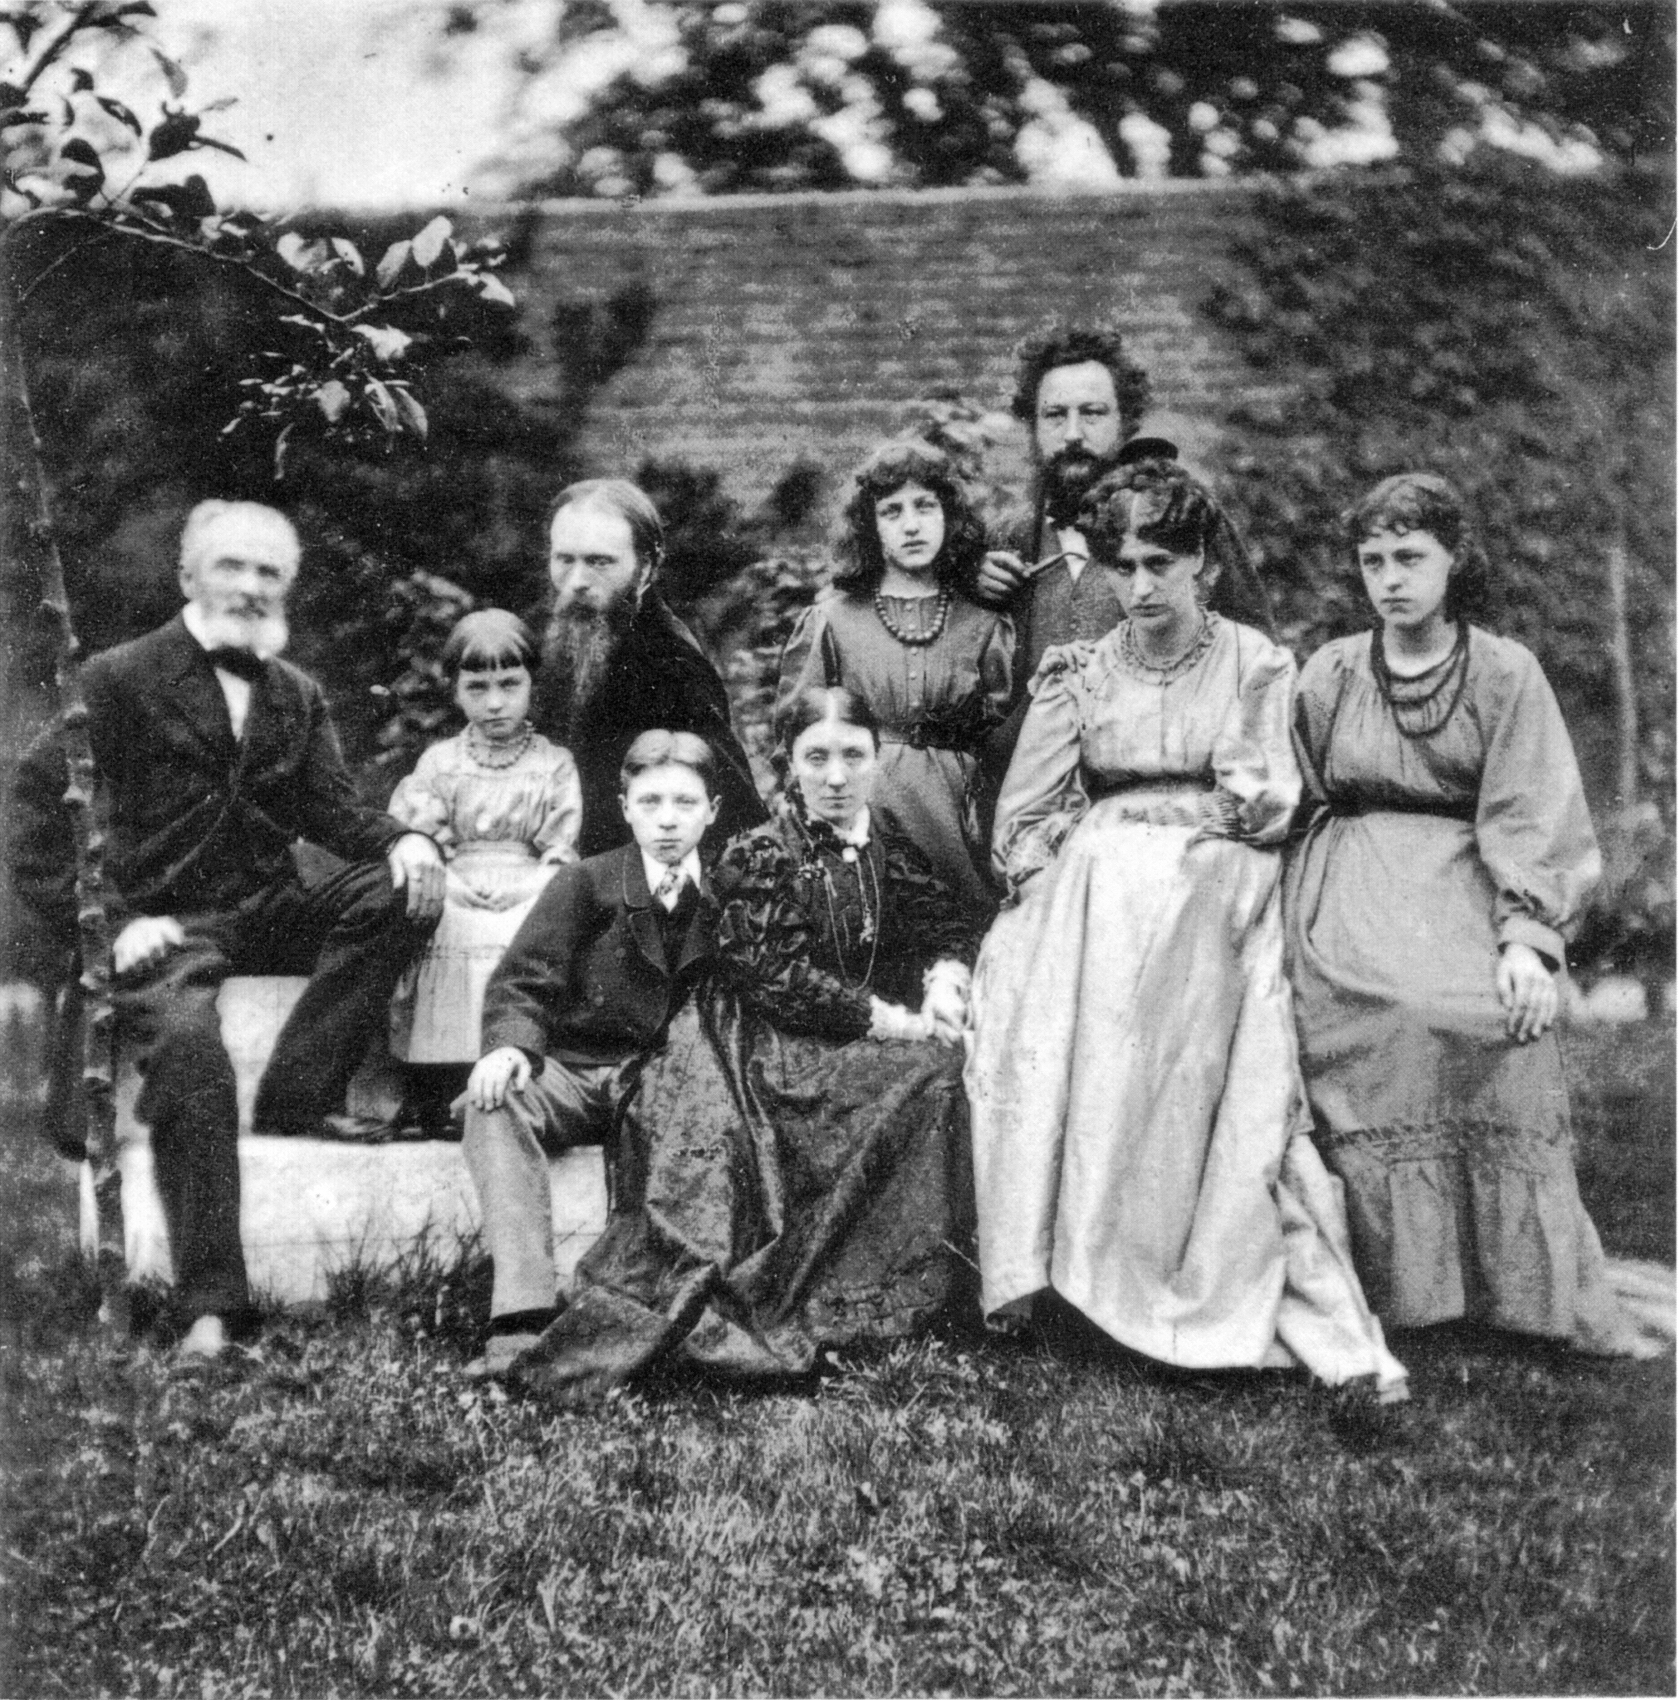 File:Frederick Hollyer Morris and Burne-Jones Families 1874.jpg